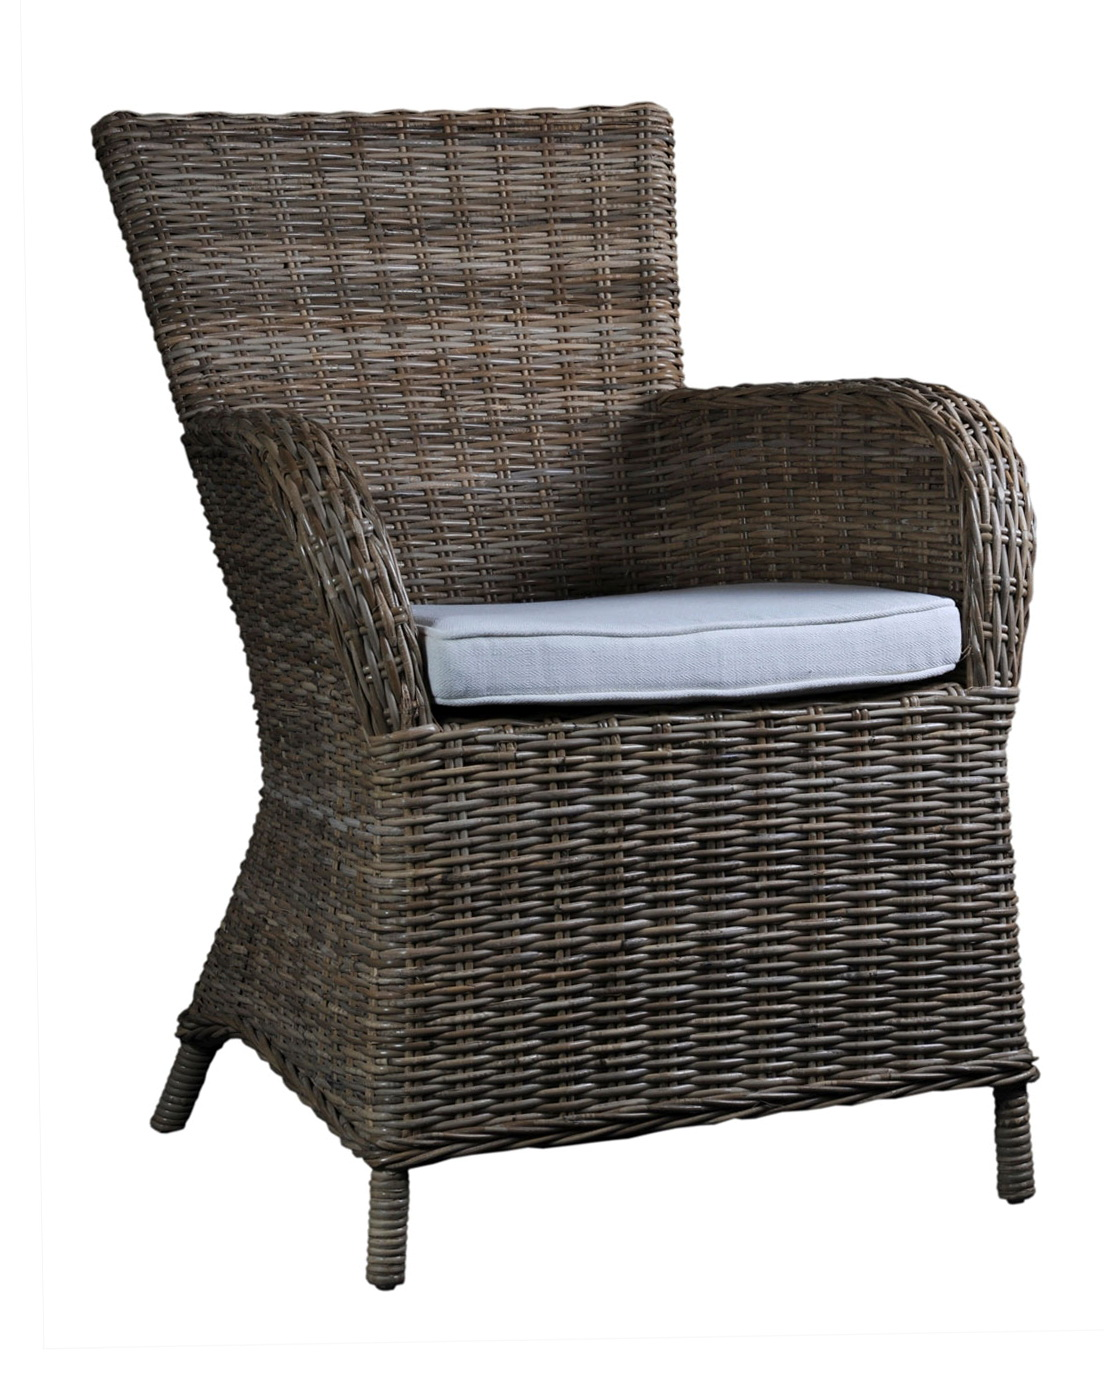 Cushions For Wicker Chairs Uk Home Design Ideas